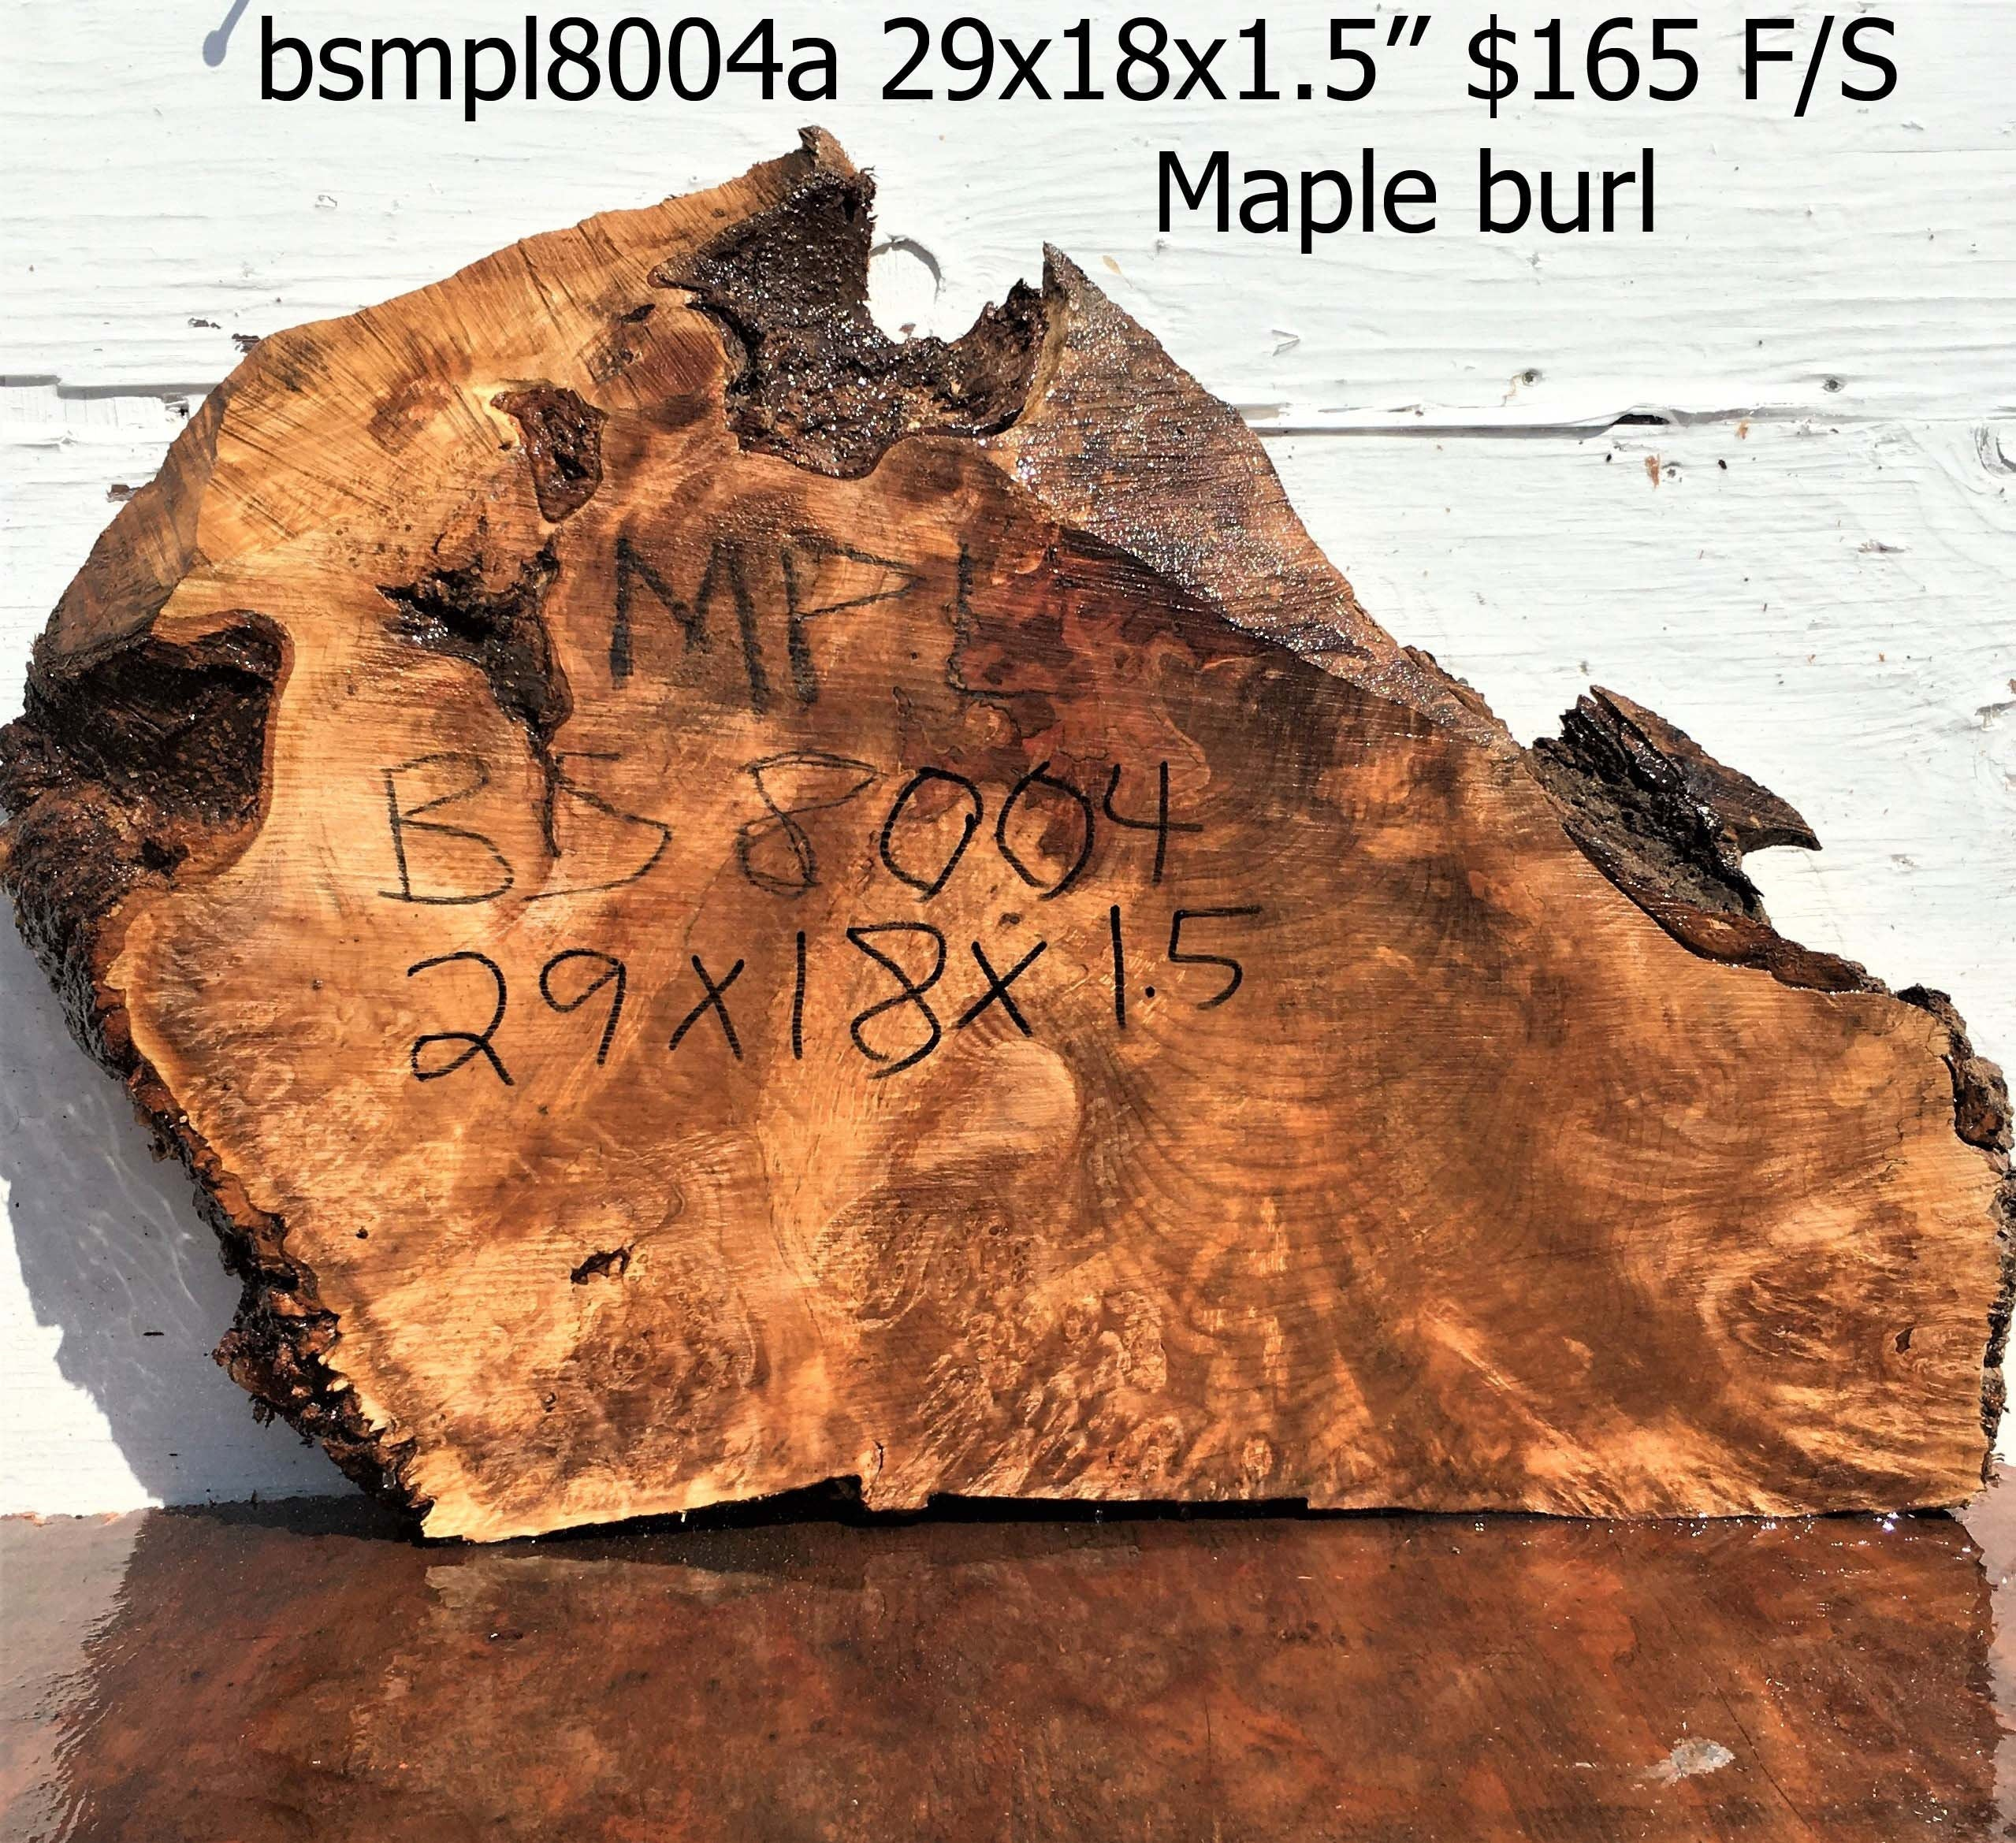 Maple burl slab | live edge table top | craft woods | bsmpl8004